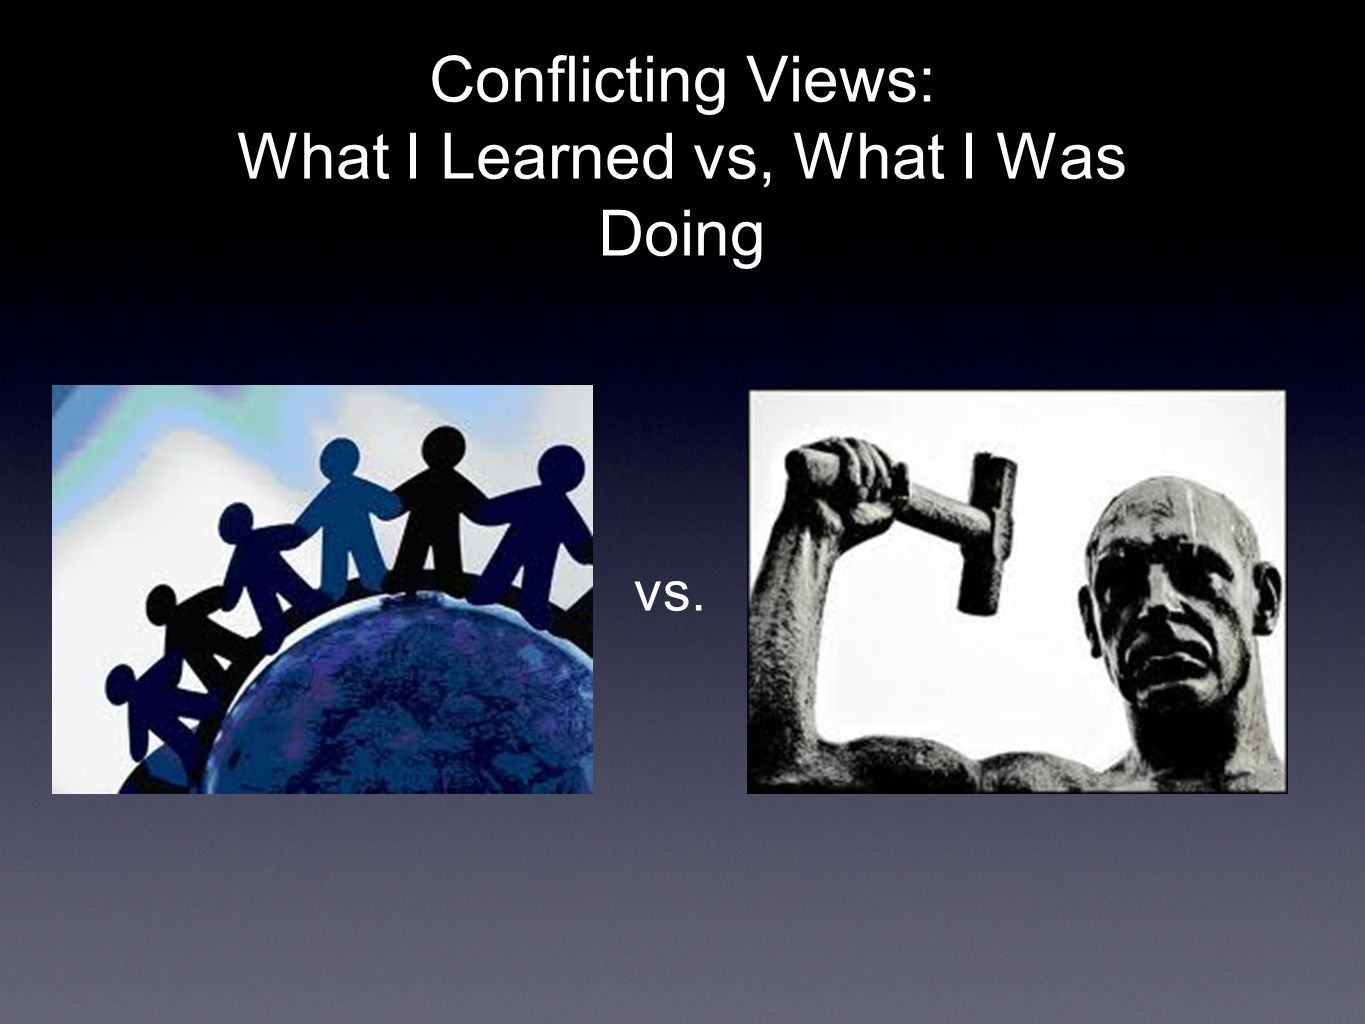 Conflicting Views: What I Learned vs, What I Was Doing vs.